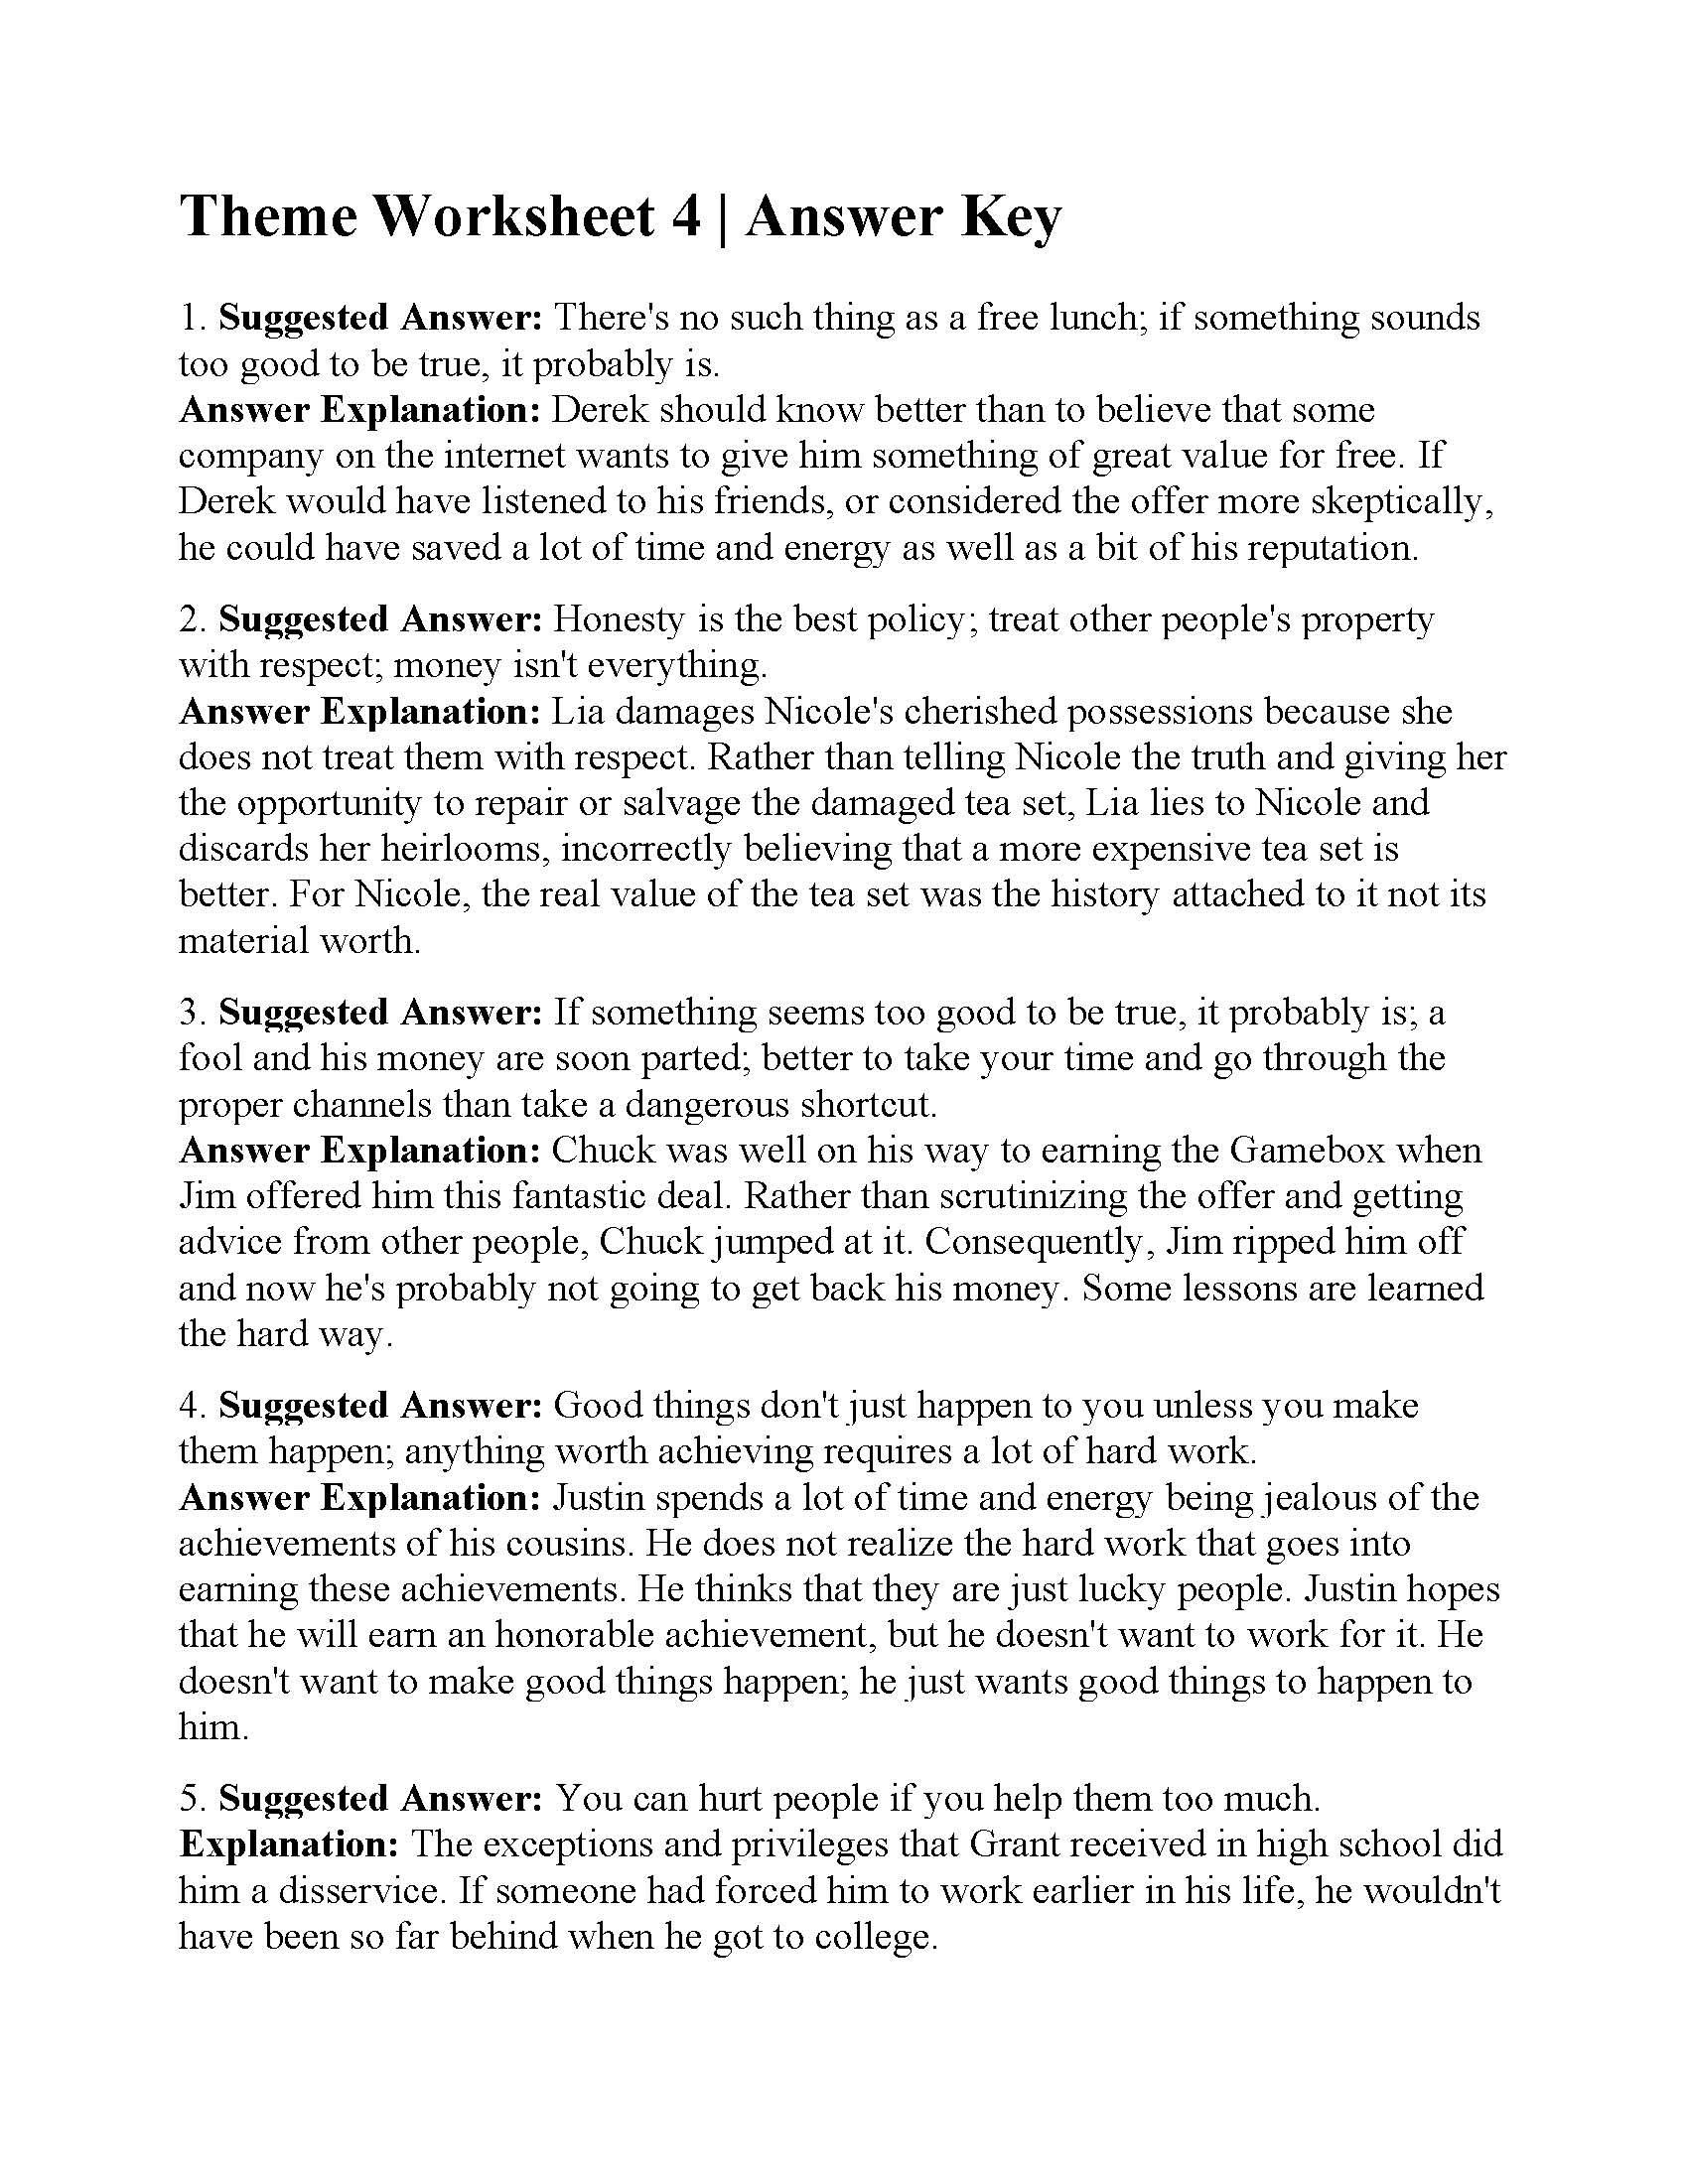 Main Idea Worksheet 4 This is the Answer Key for the theme Worksheet 4